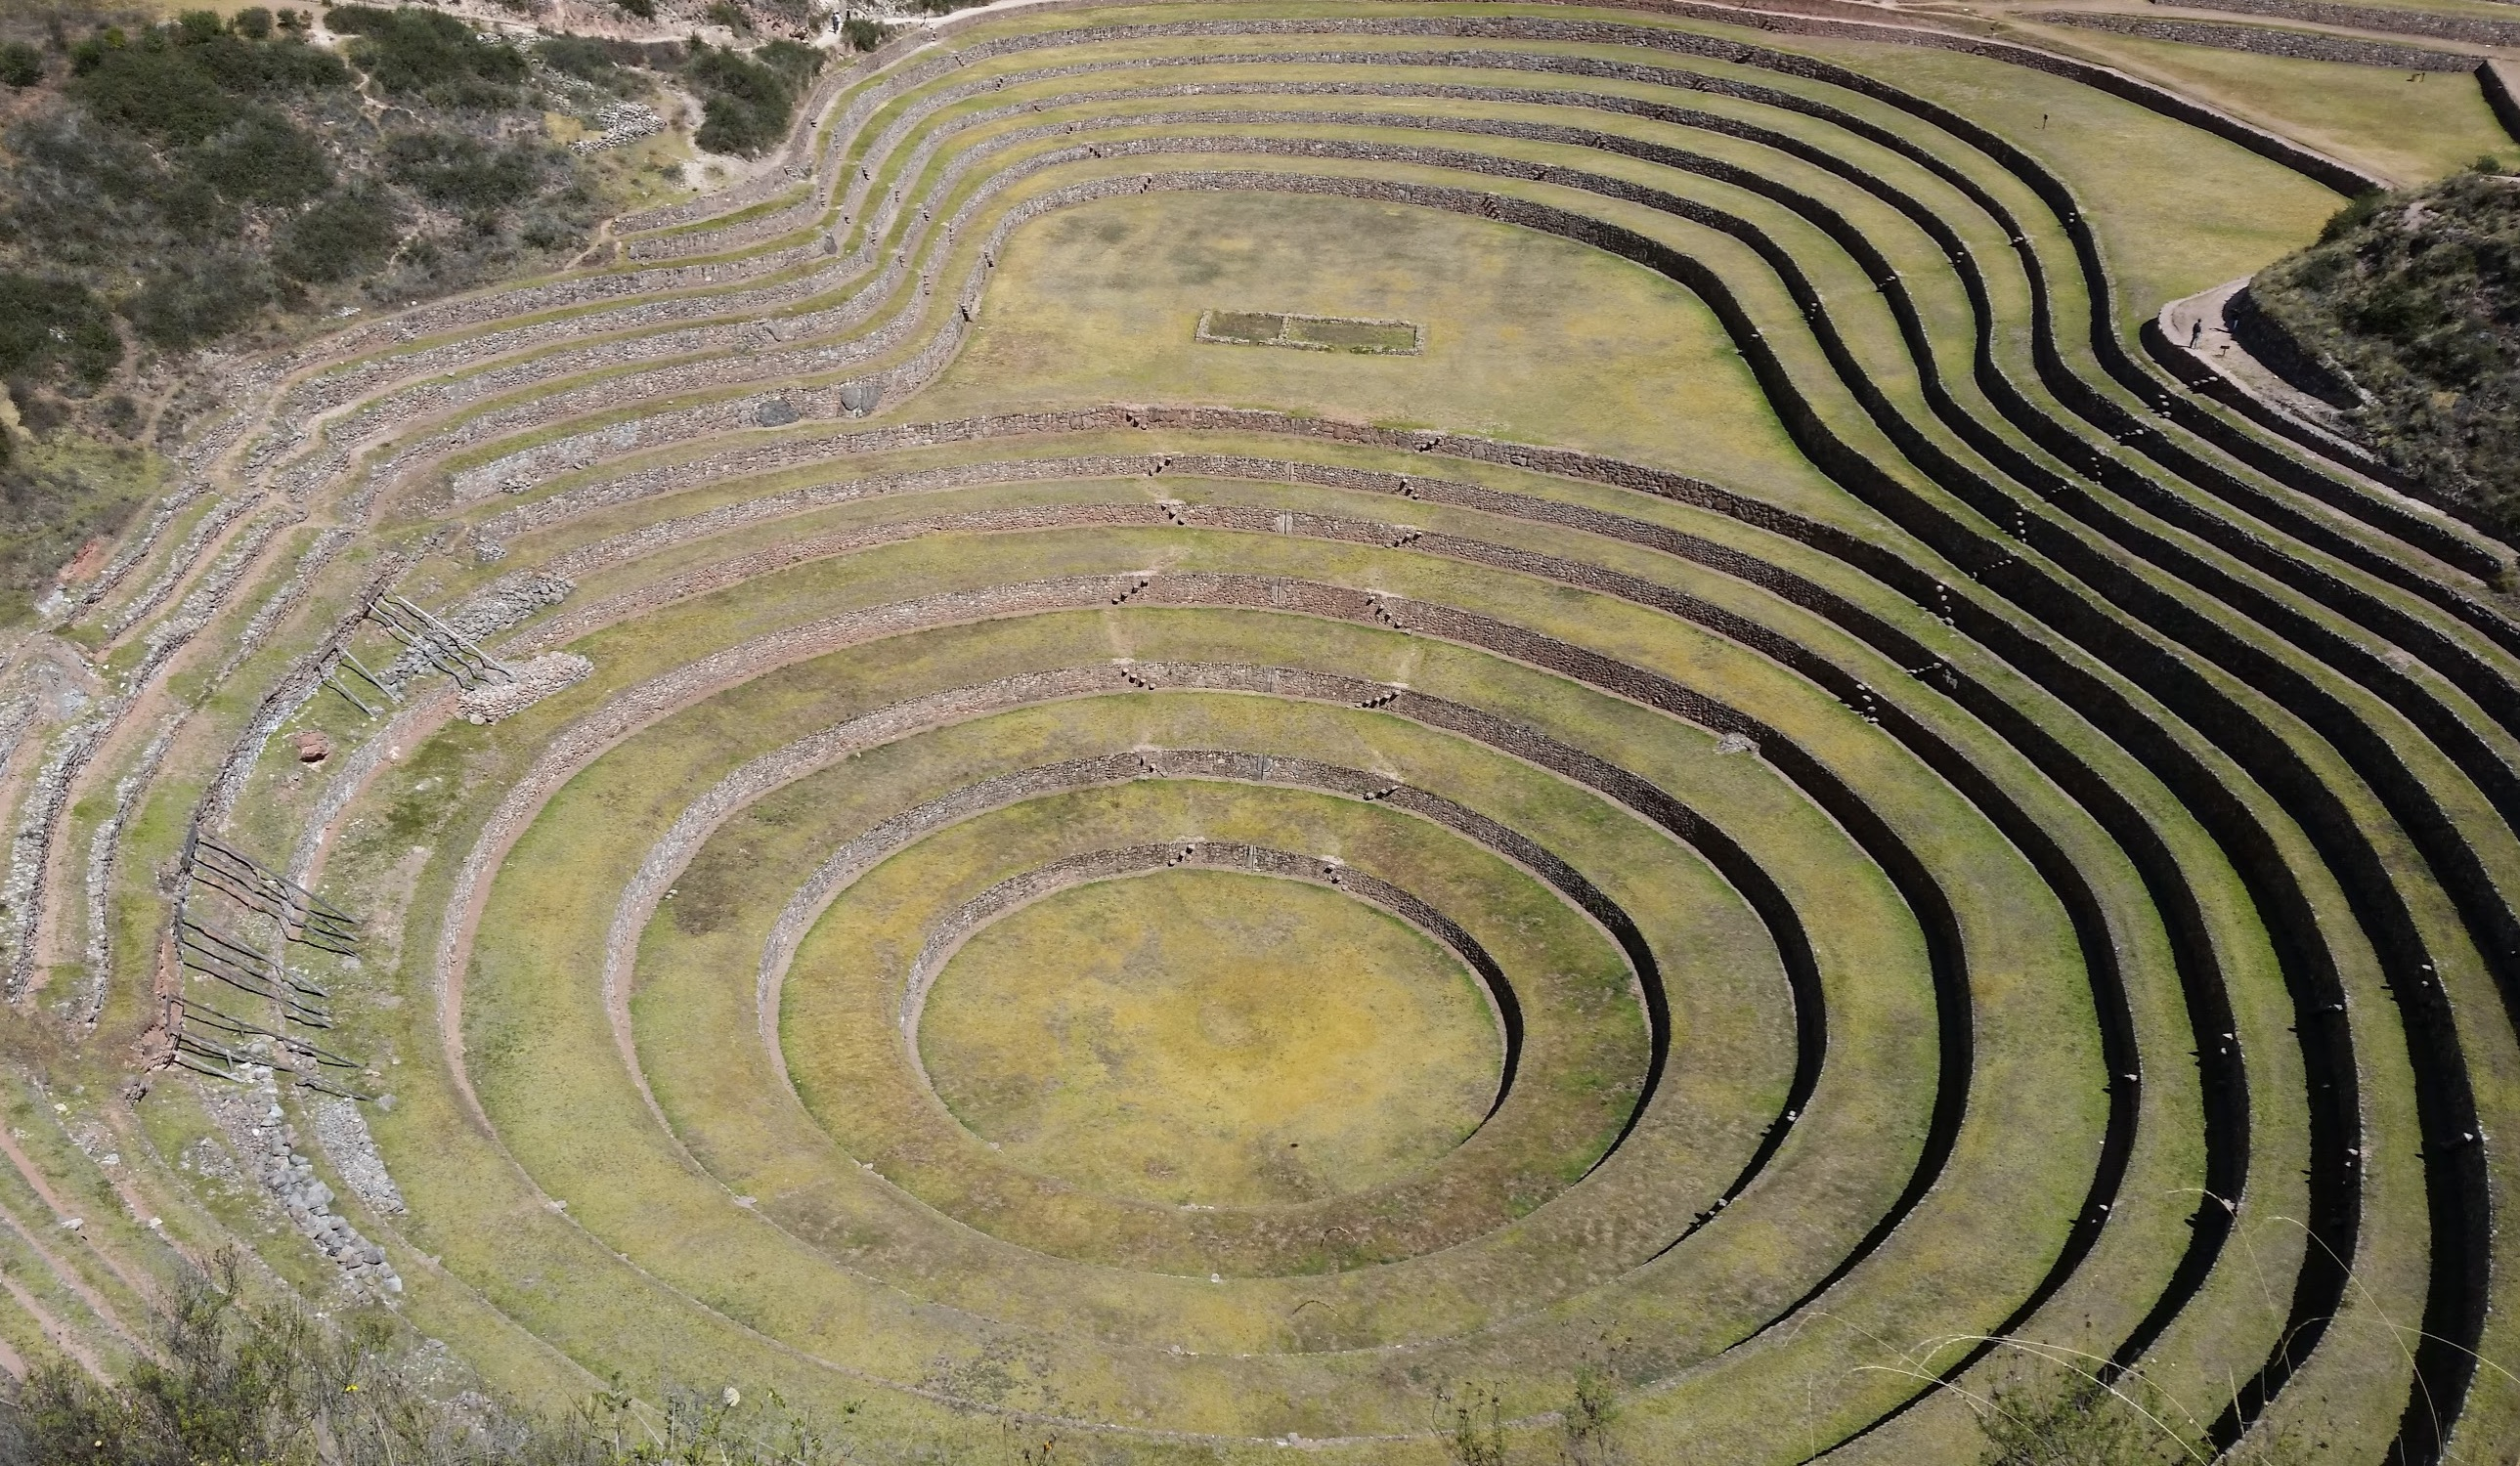 Car Rental Codes >> What we did with 7 days in the Sacred Valley Peru (BESIDES Machu Picchu!) - Points with a Crew